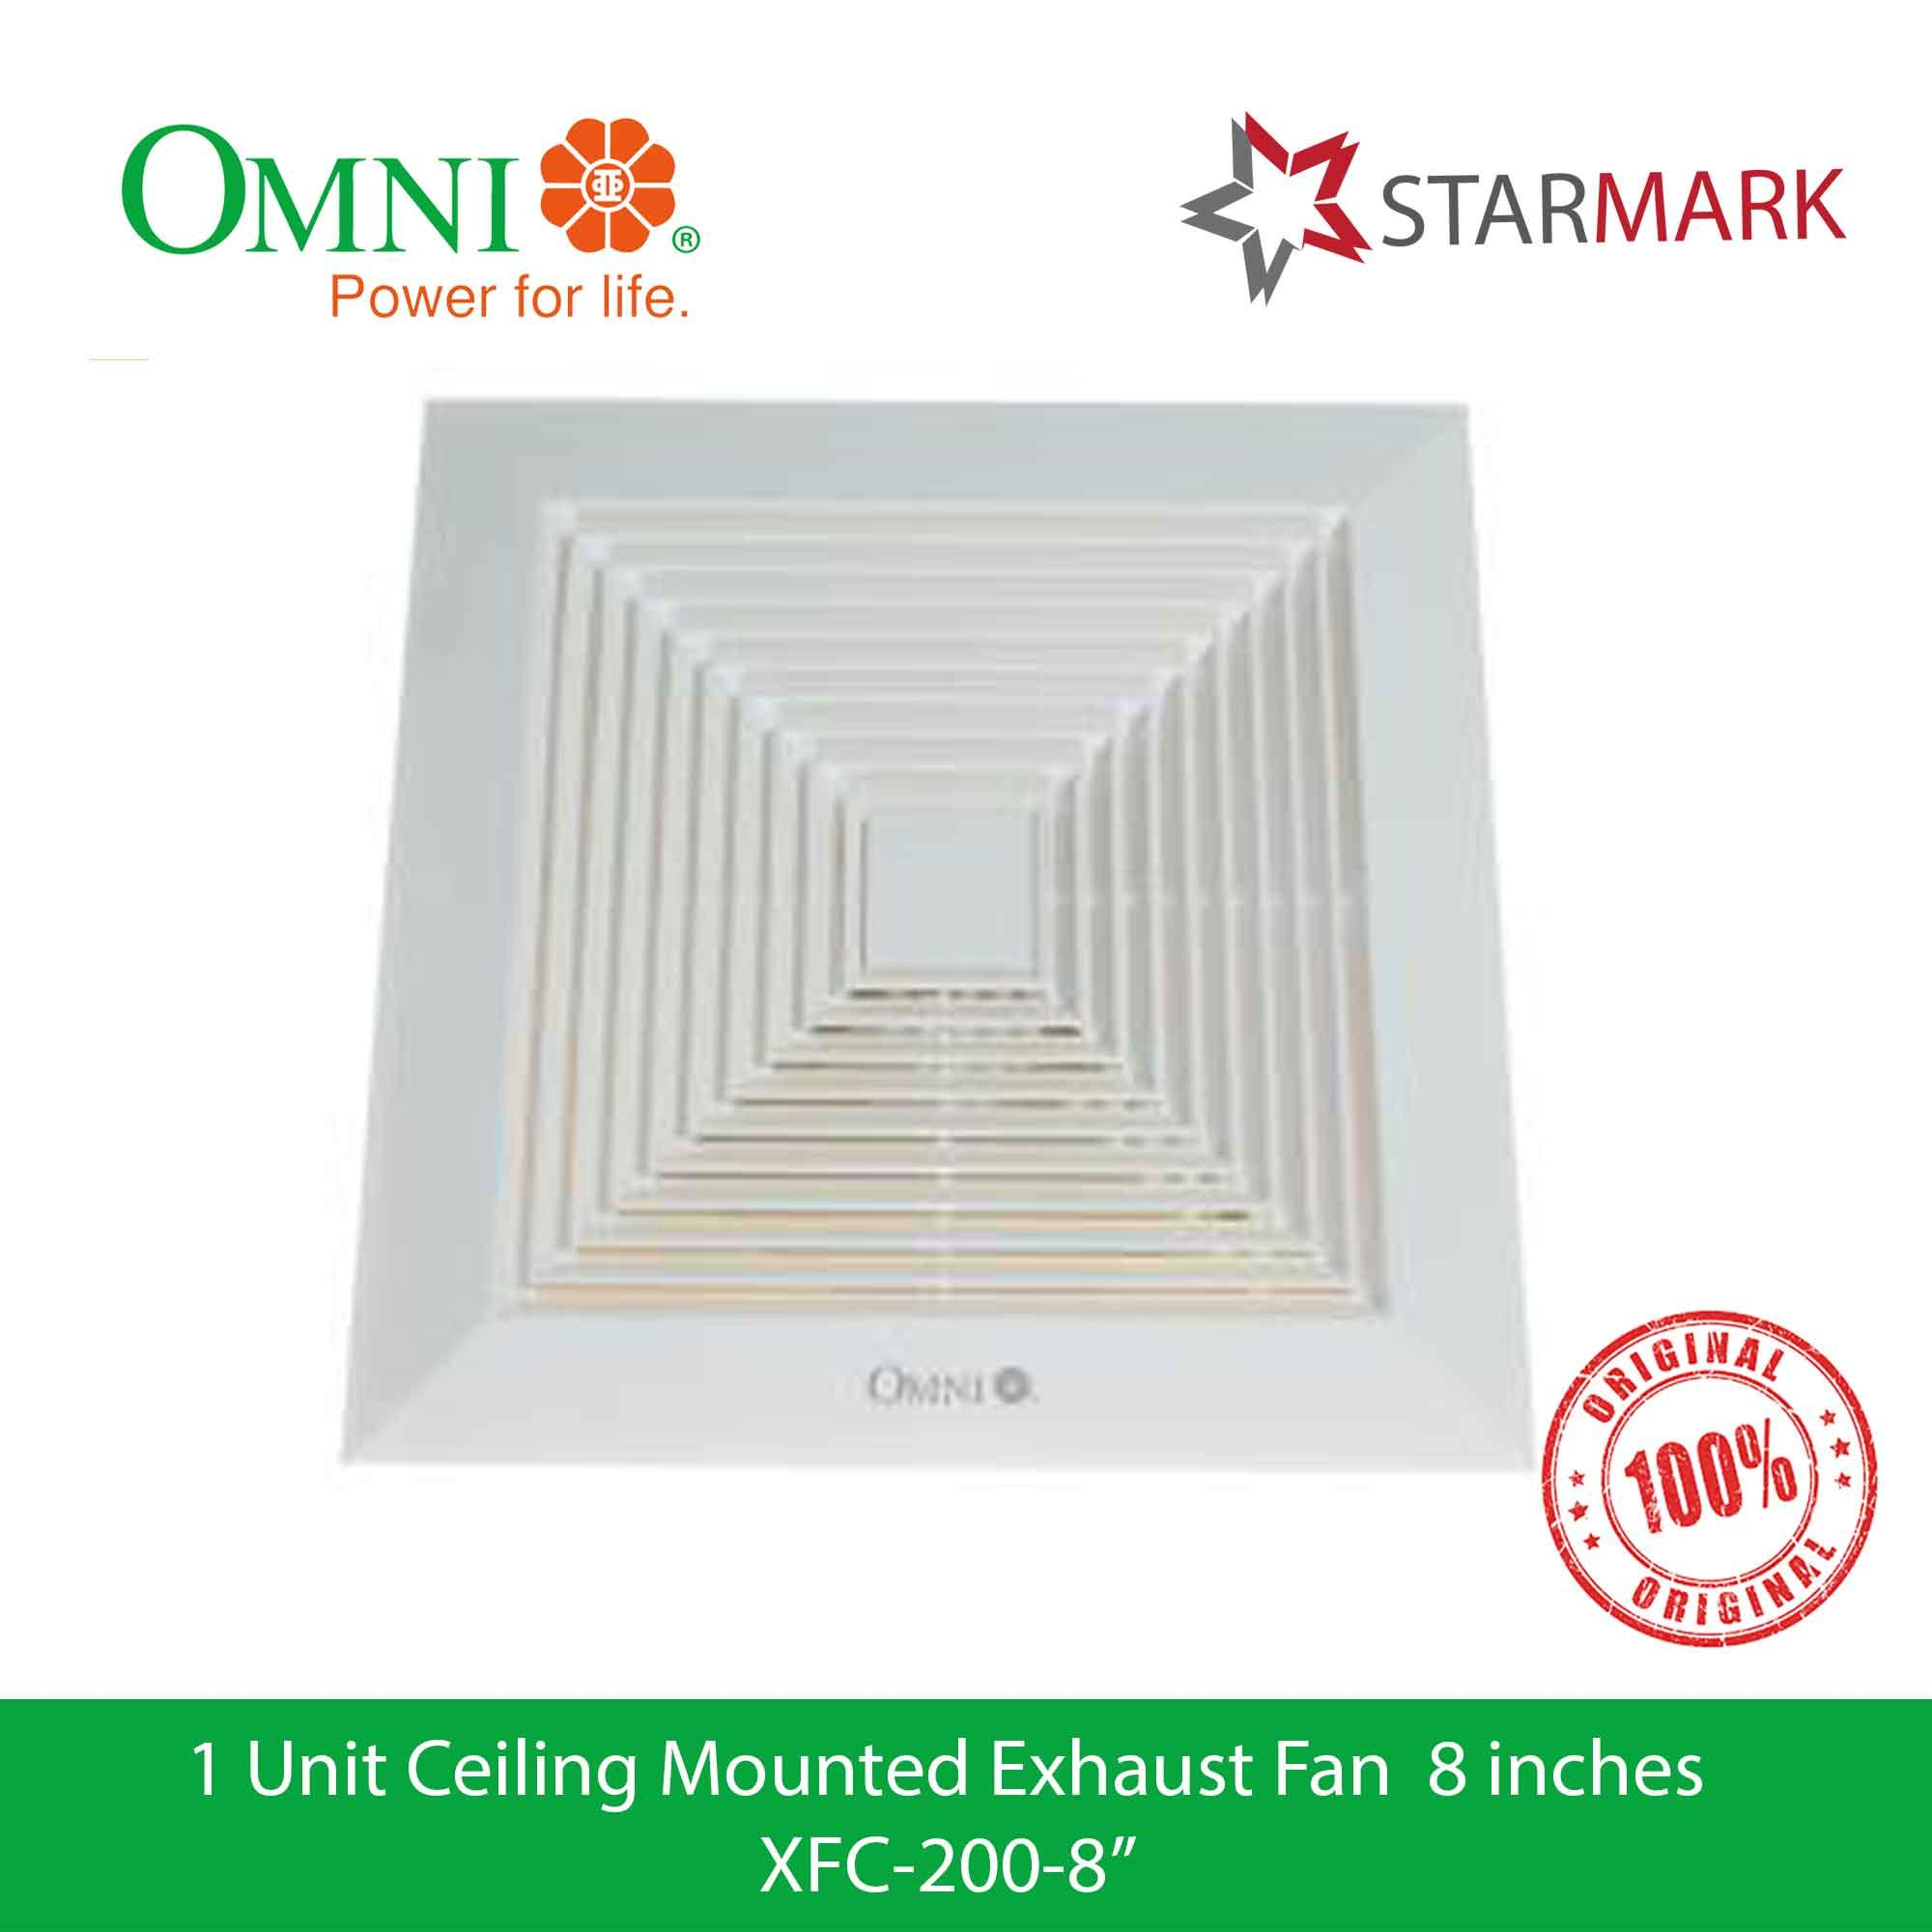 Omni Ceiling Mounted Exhaust Fan 8 inches inch XFC-200-8 XFC200-8  XFC-200-8